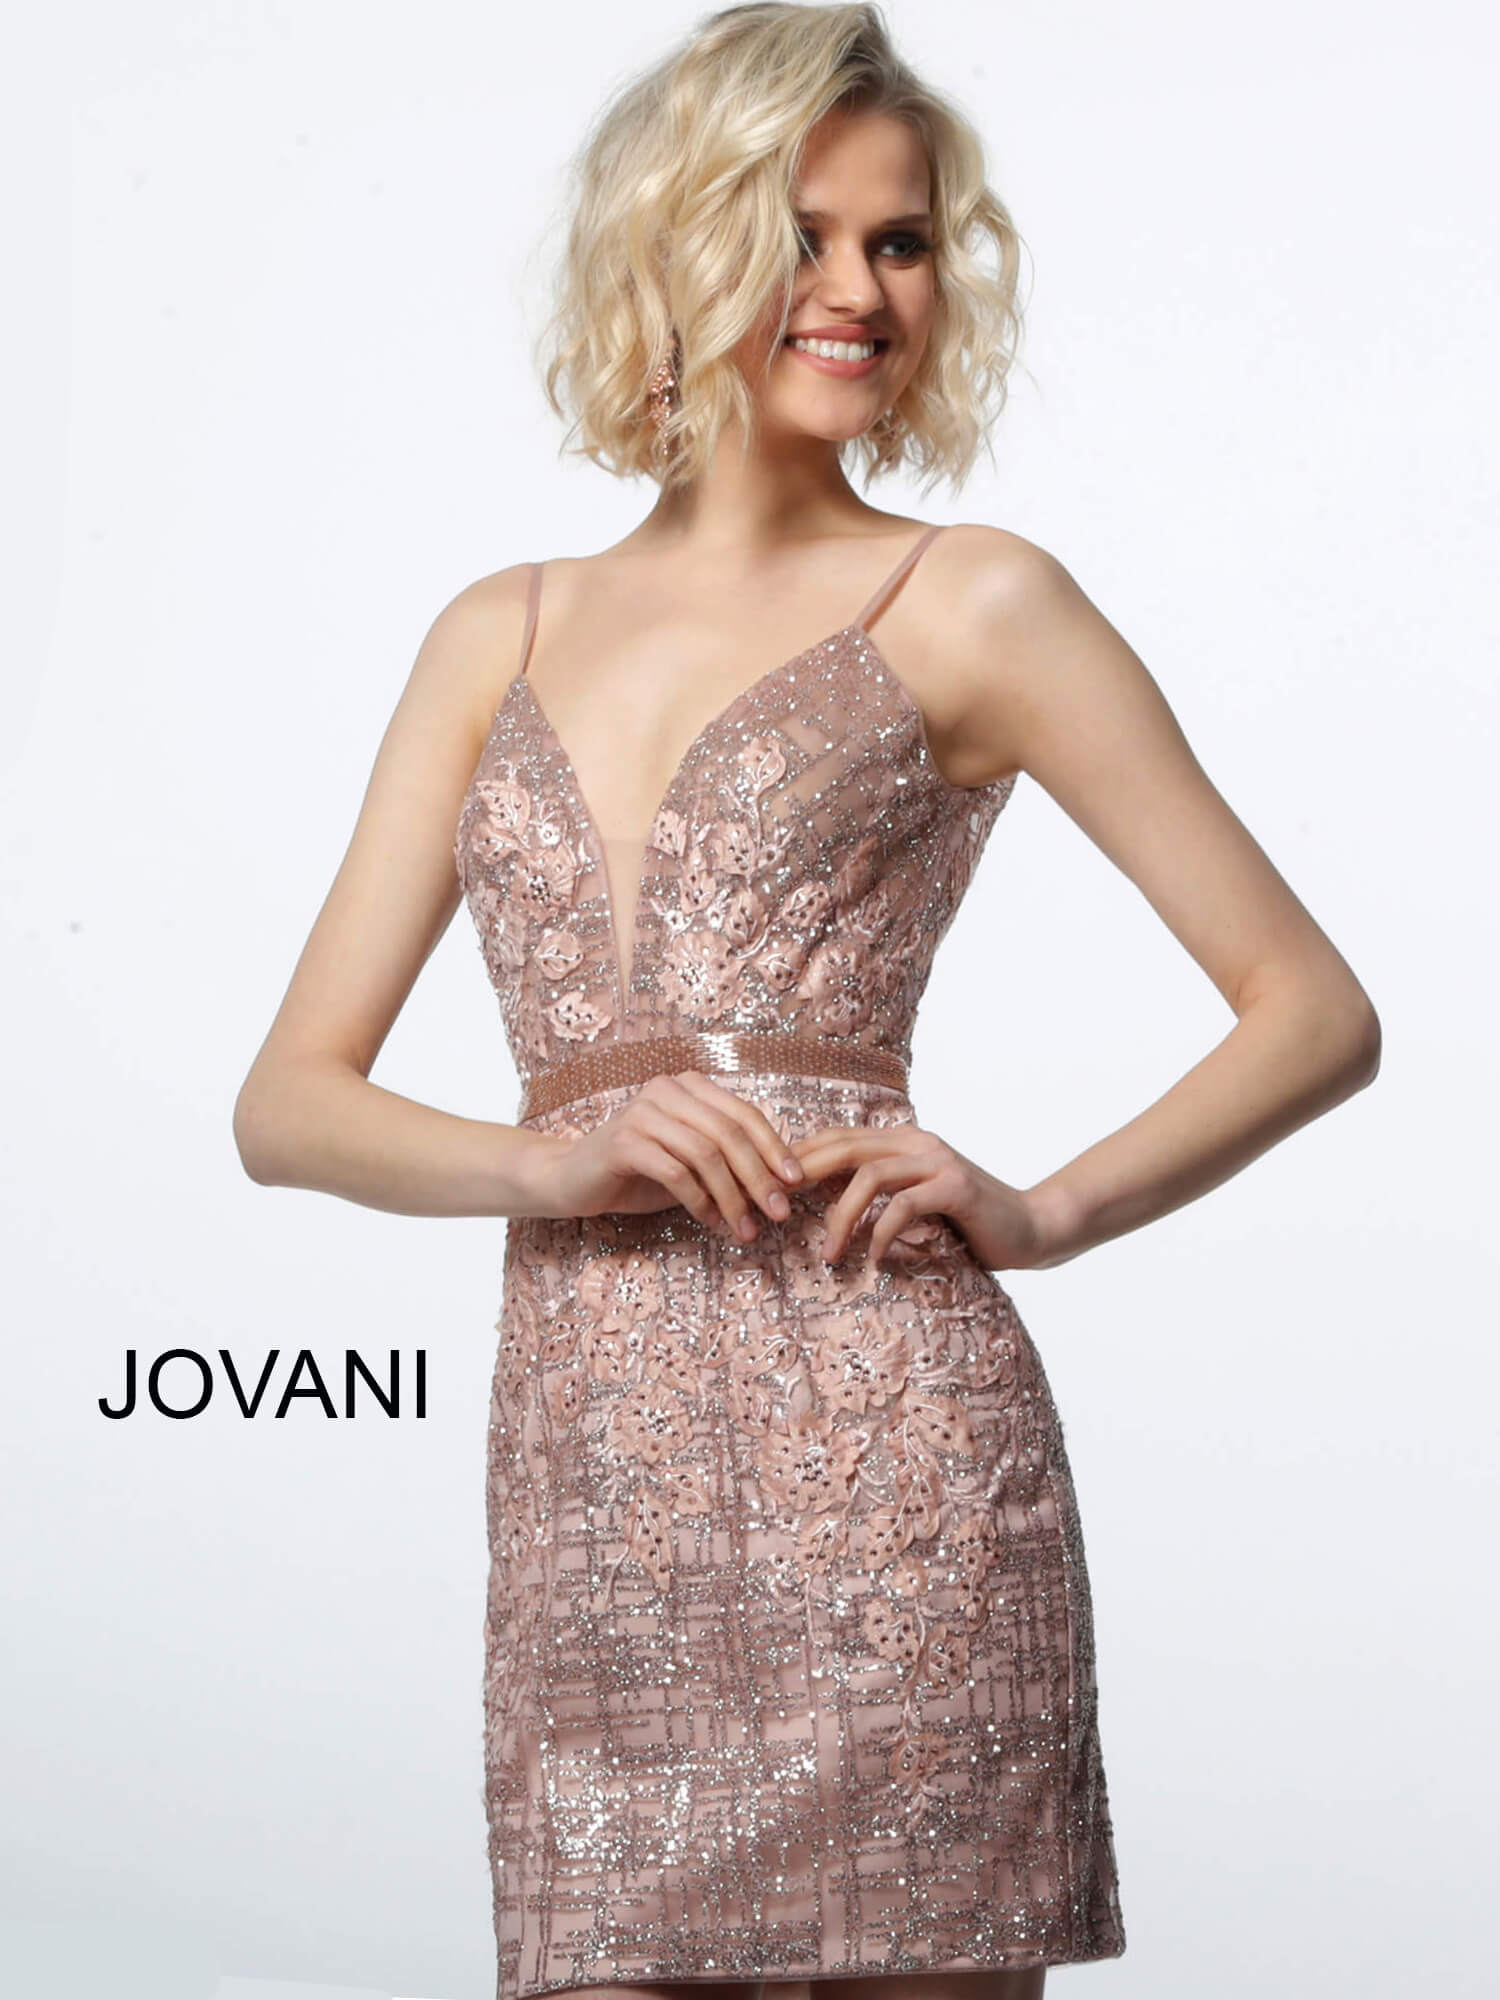 Jovani light pink lace cocktail dress 1106 on mobile 4